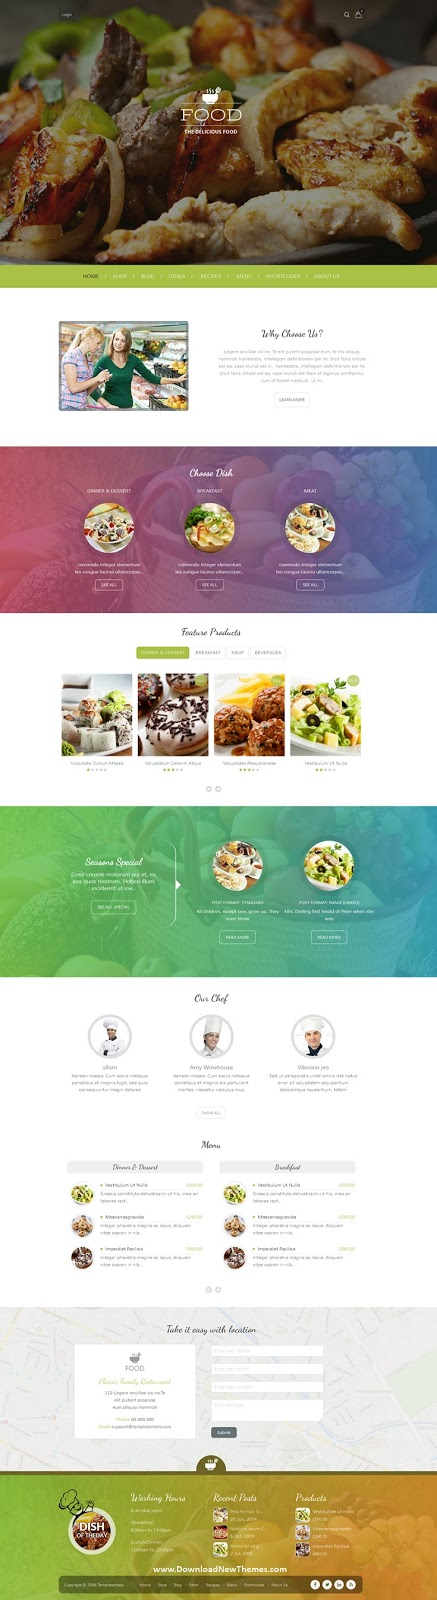 Restaruant WordPress Theme 2020